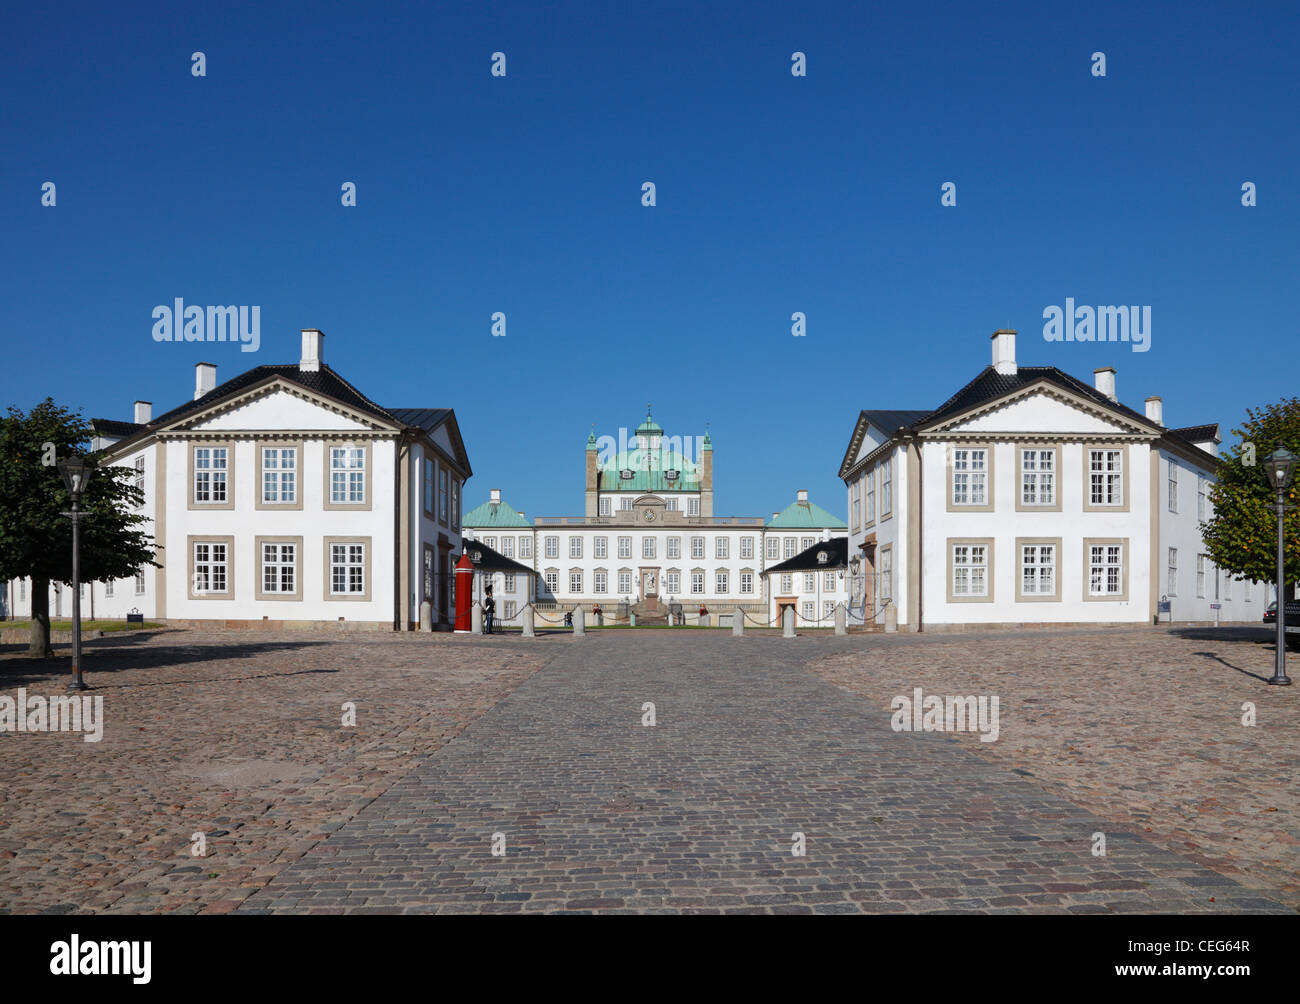 The Royal Fredensborg Palace in Fredensborg, near Copenhagen, Denmark. Bear skin sentries from The Royal Life Guards - Stock Image